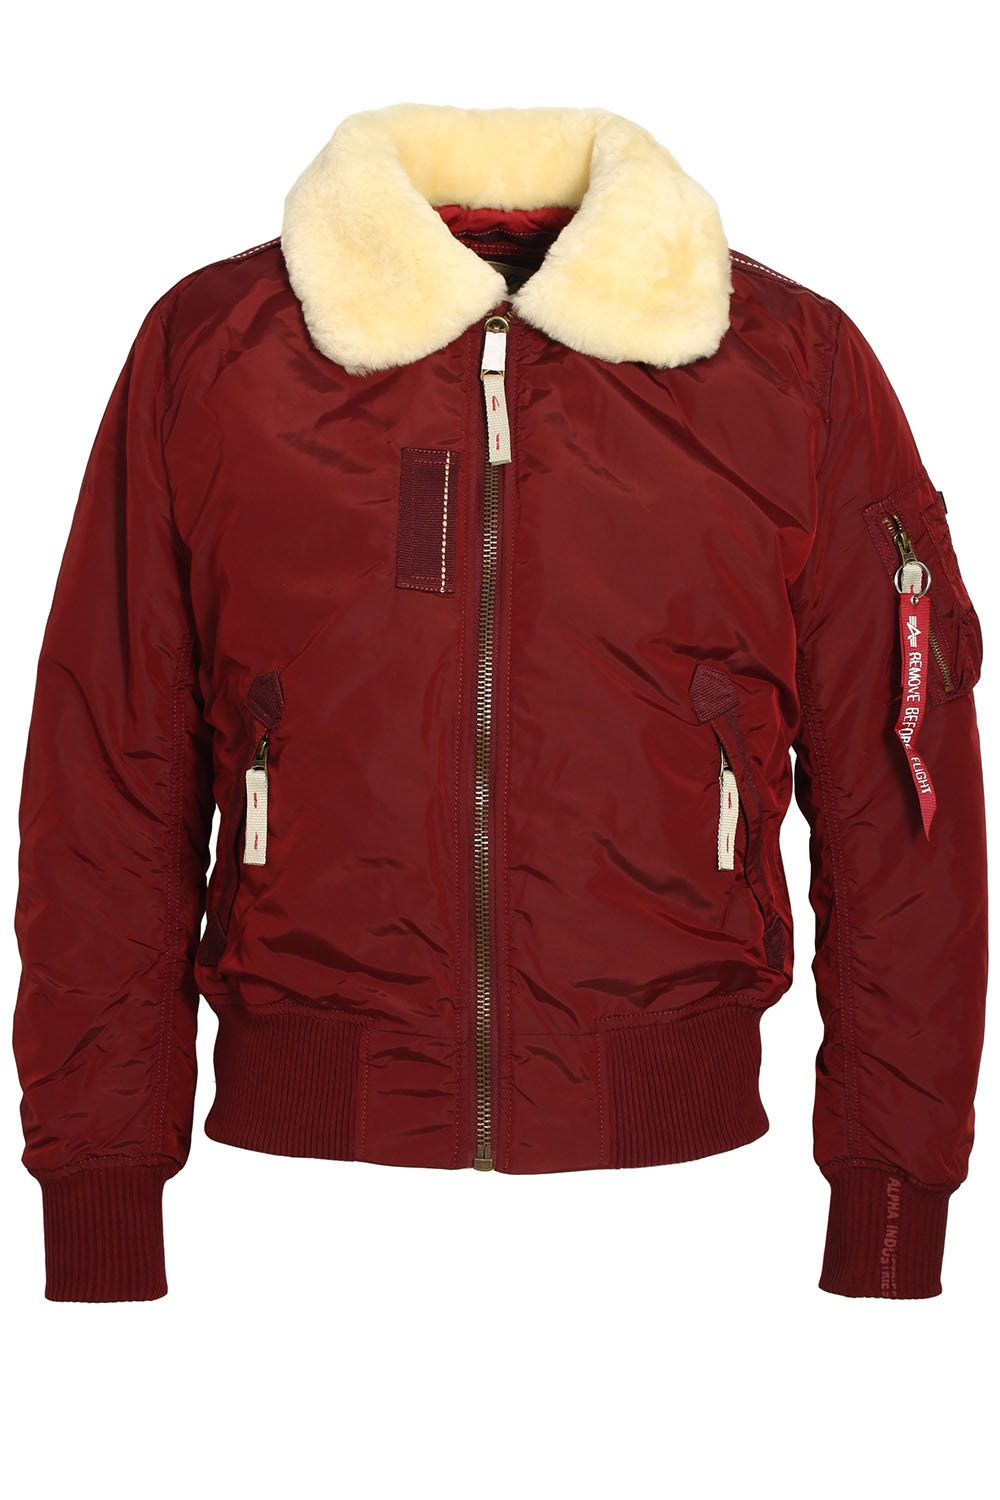 alpha industries injector iii bomber jacket shop alpha jackets. Black Bedroom Furniture Sets. Home Design Ideas